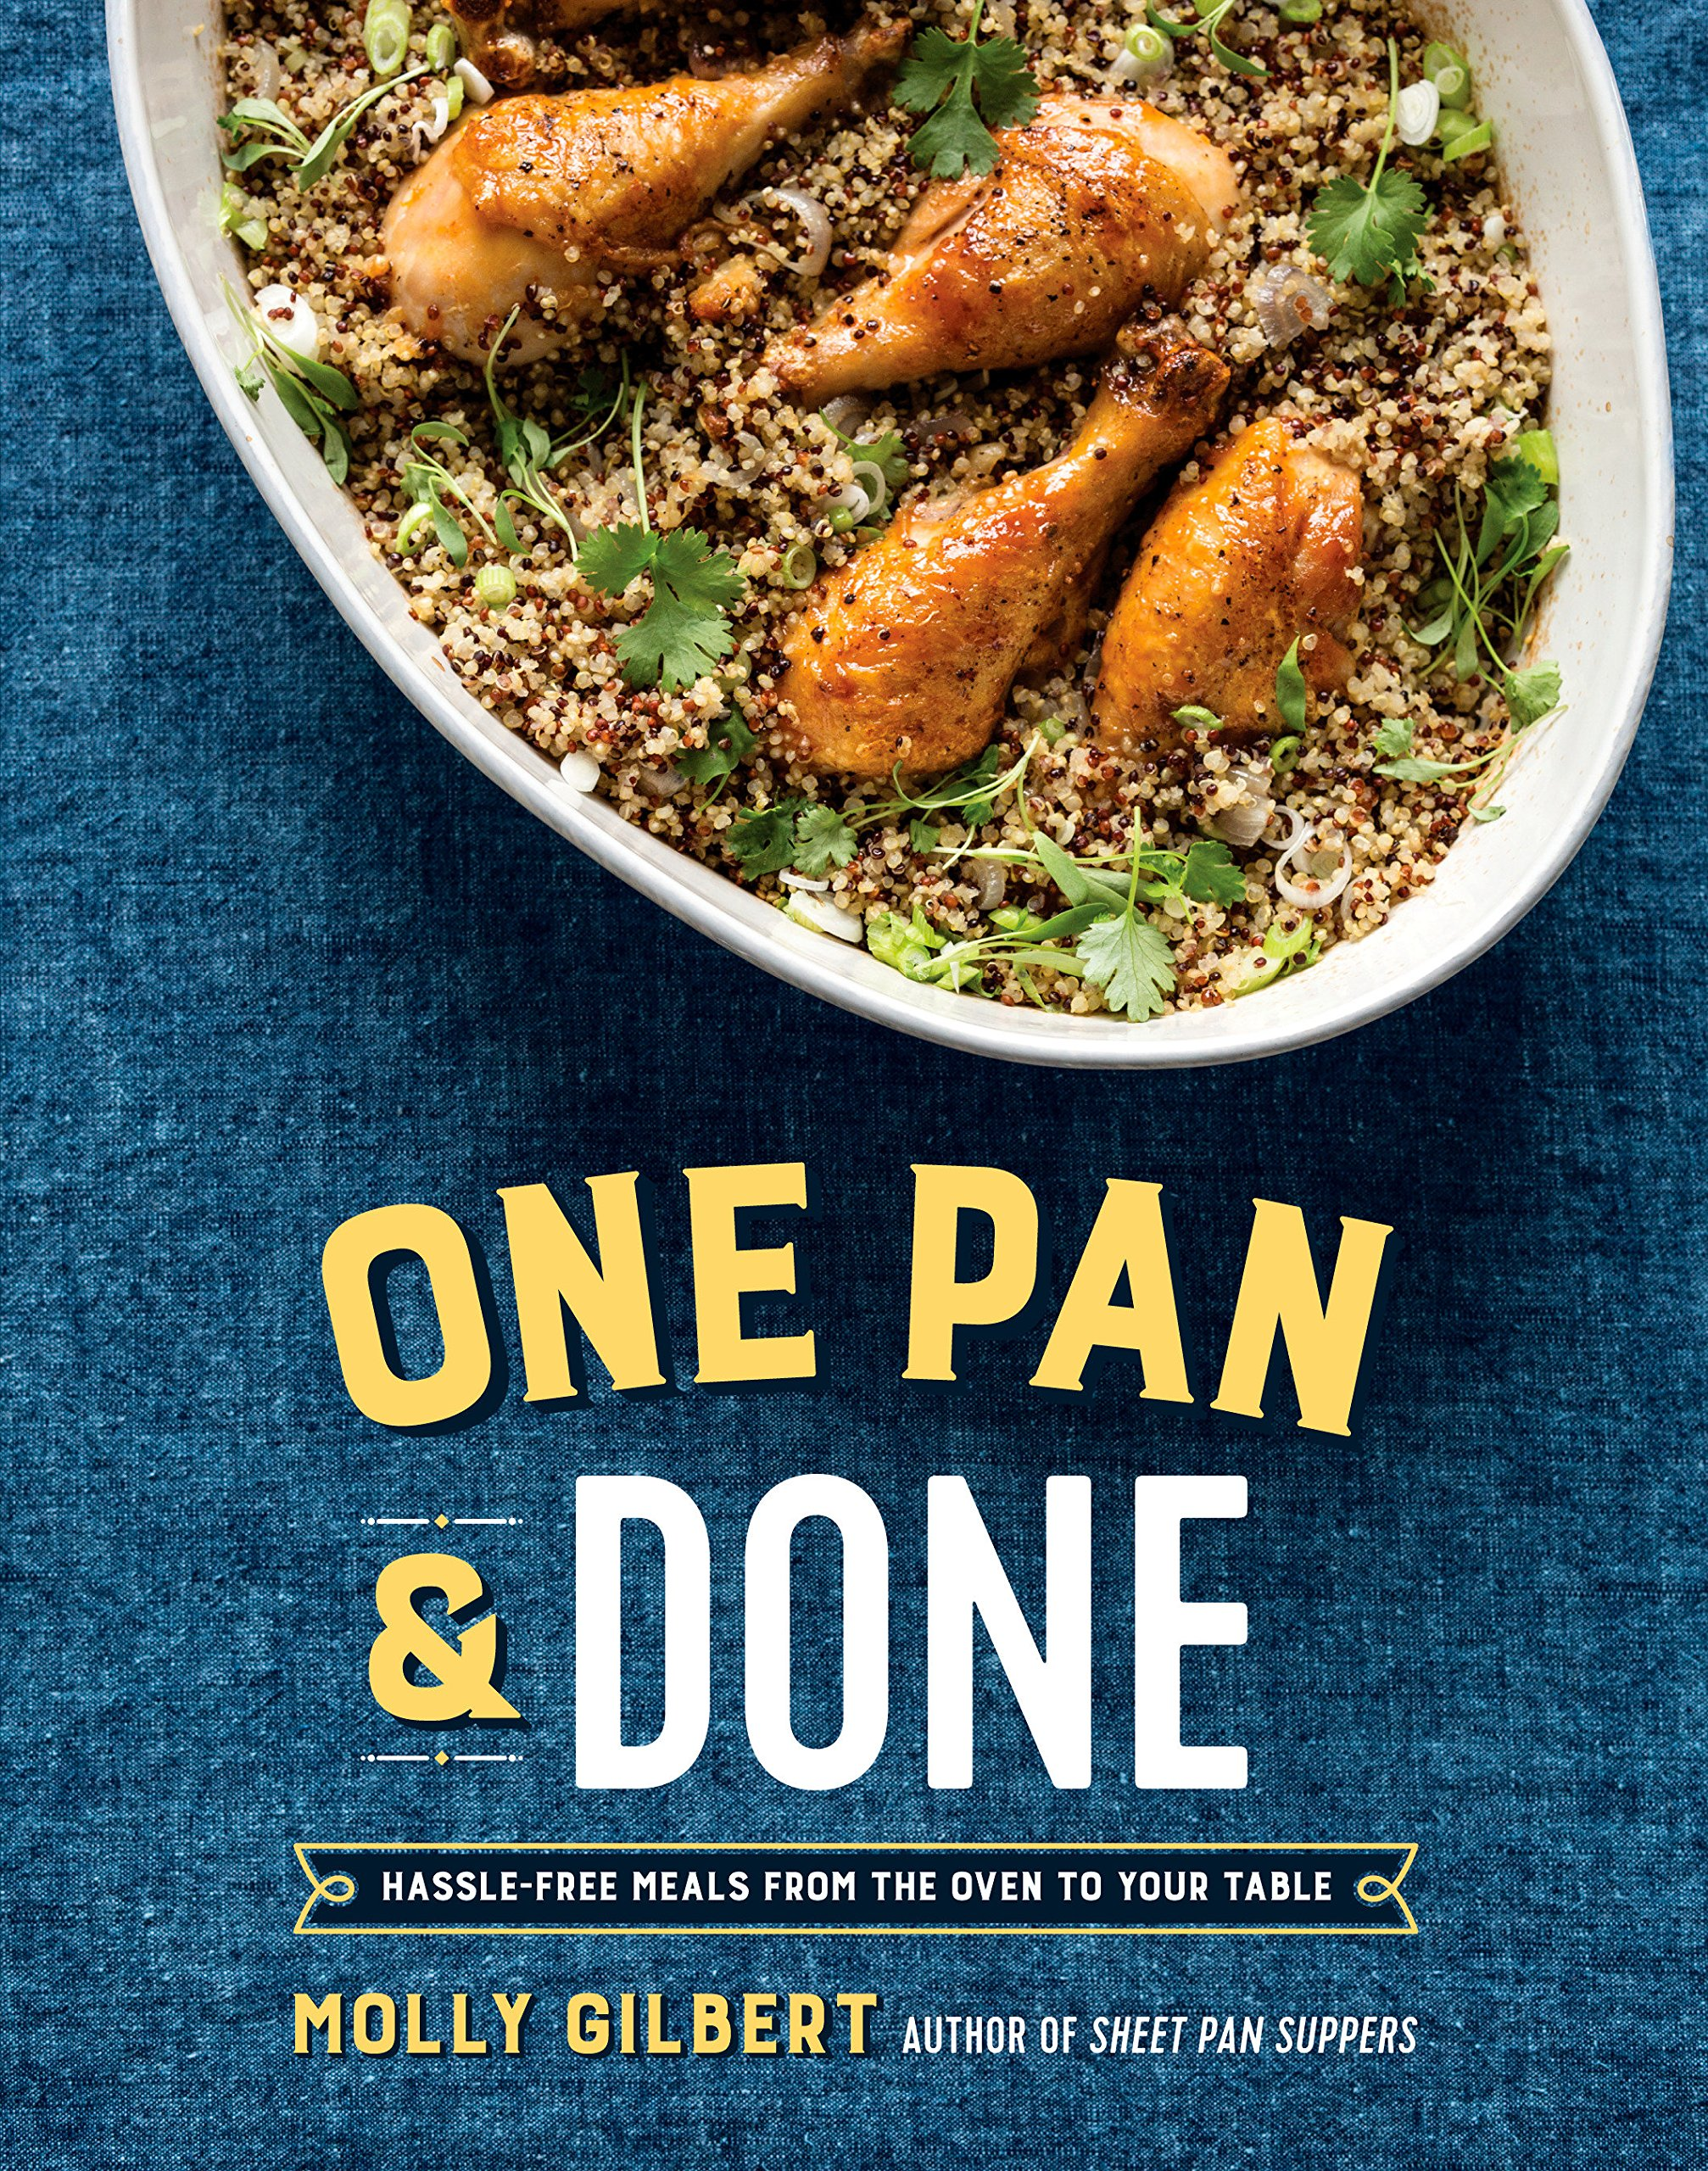 One Pan Done Hassle Free Meals From The Oven To Your Table A Cookbook Gilbert Molly 9781101906453 Amazon Com Books